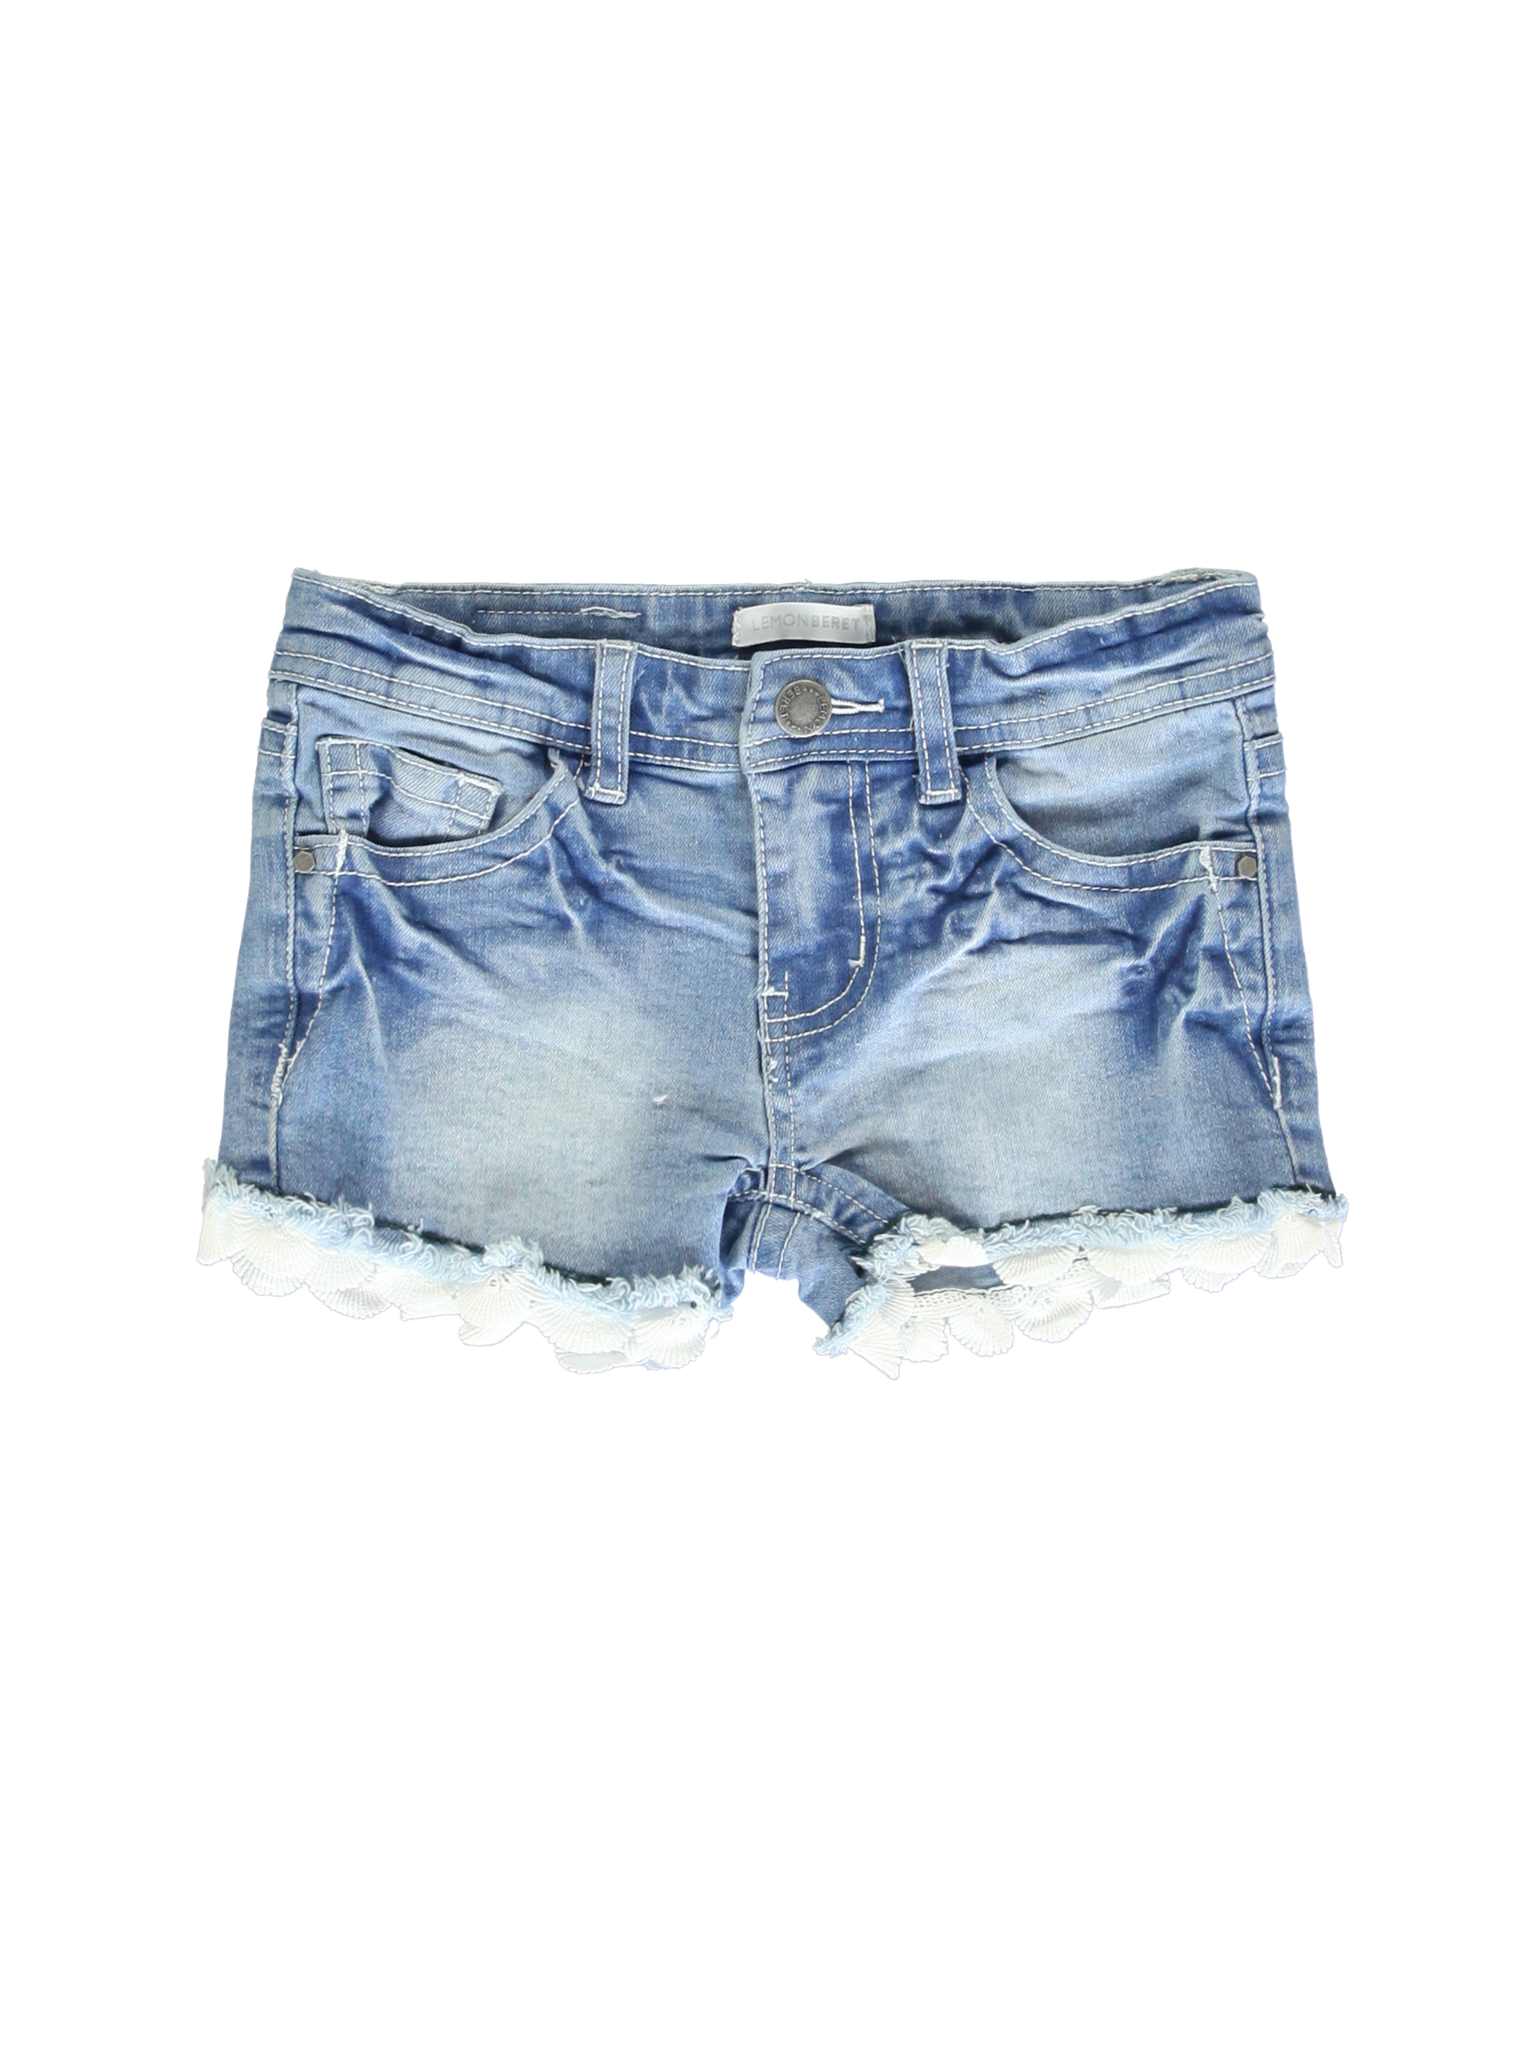 All Brands | Summerproducts Small Girls | Shorts | 10 pcs/box